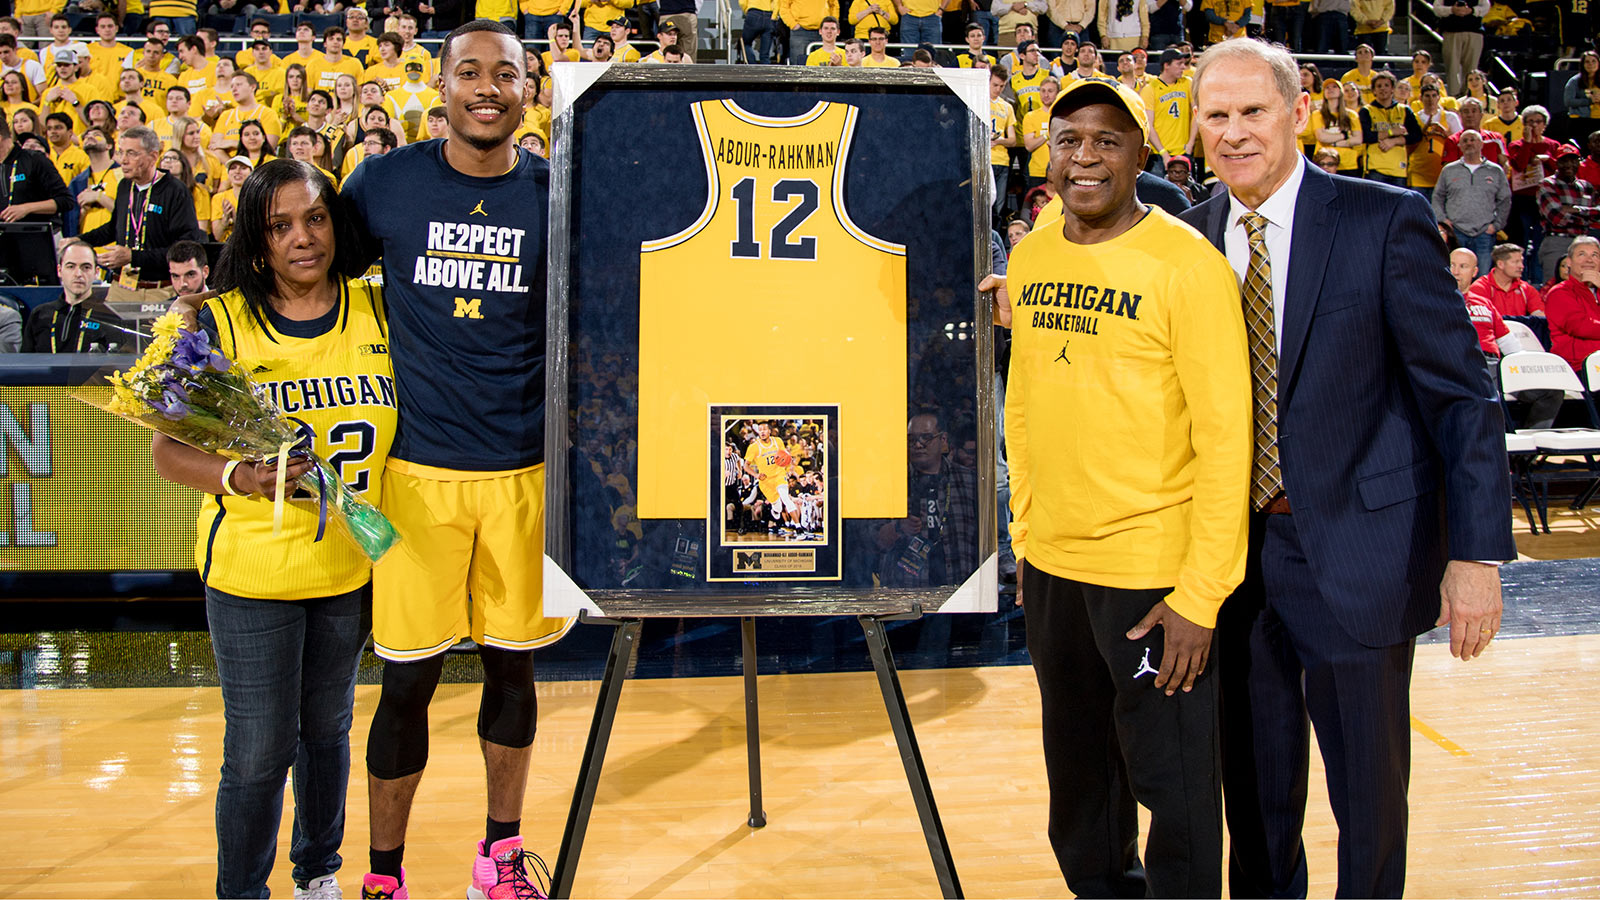 54aef80e90fe ESPN The Magazine to Cover Tuesday s Maize Out vs. OSU - University of  Michigan